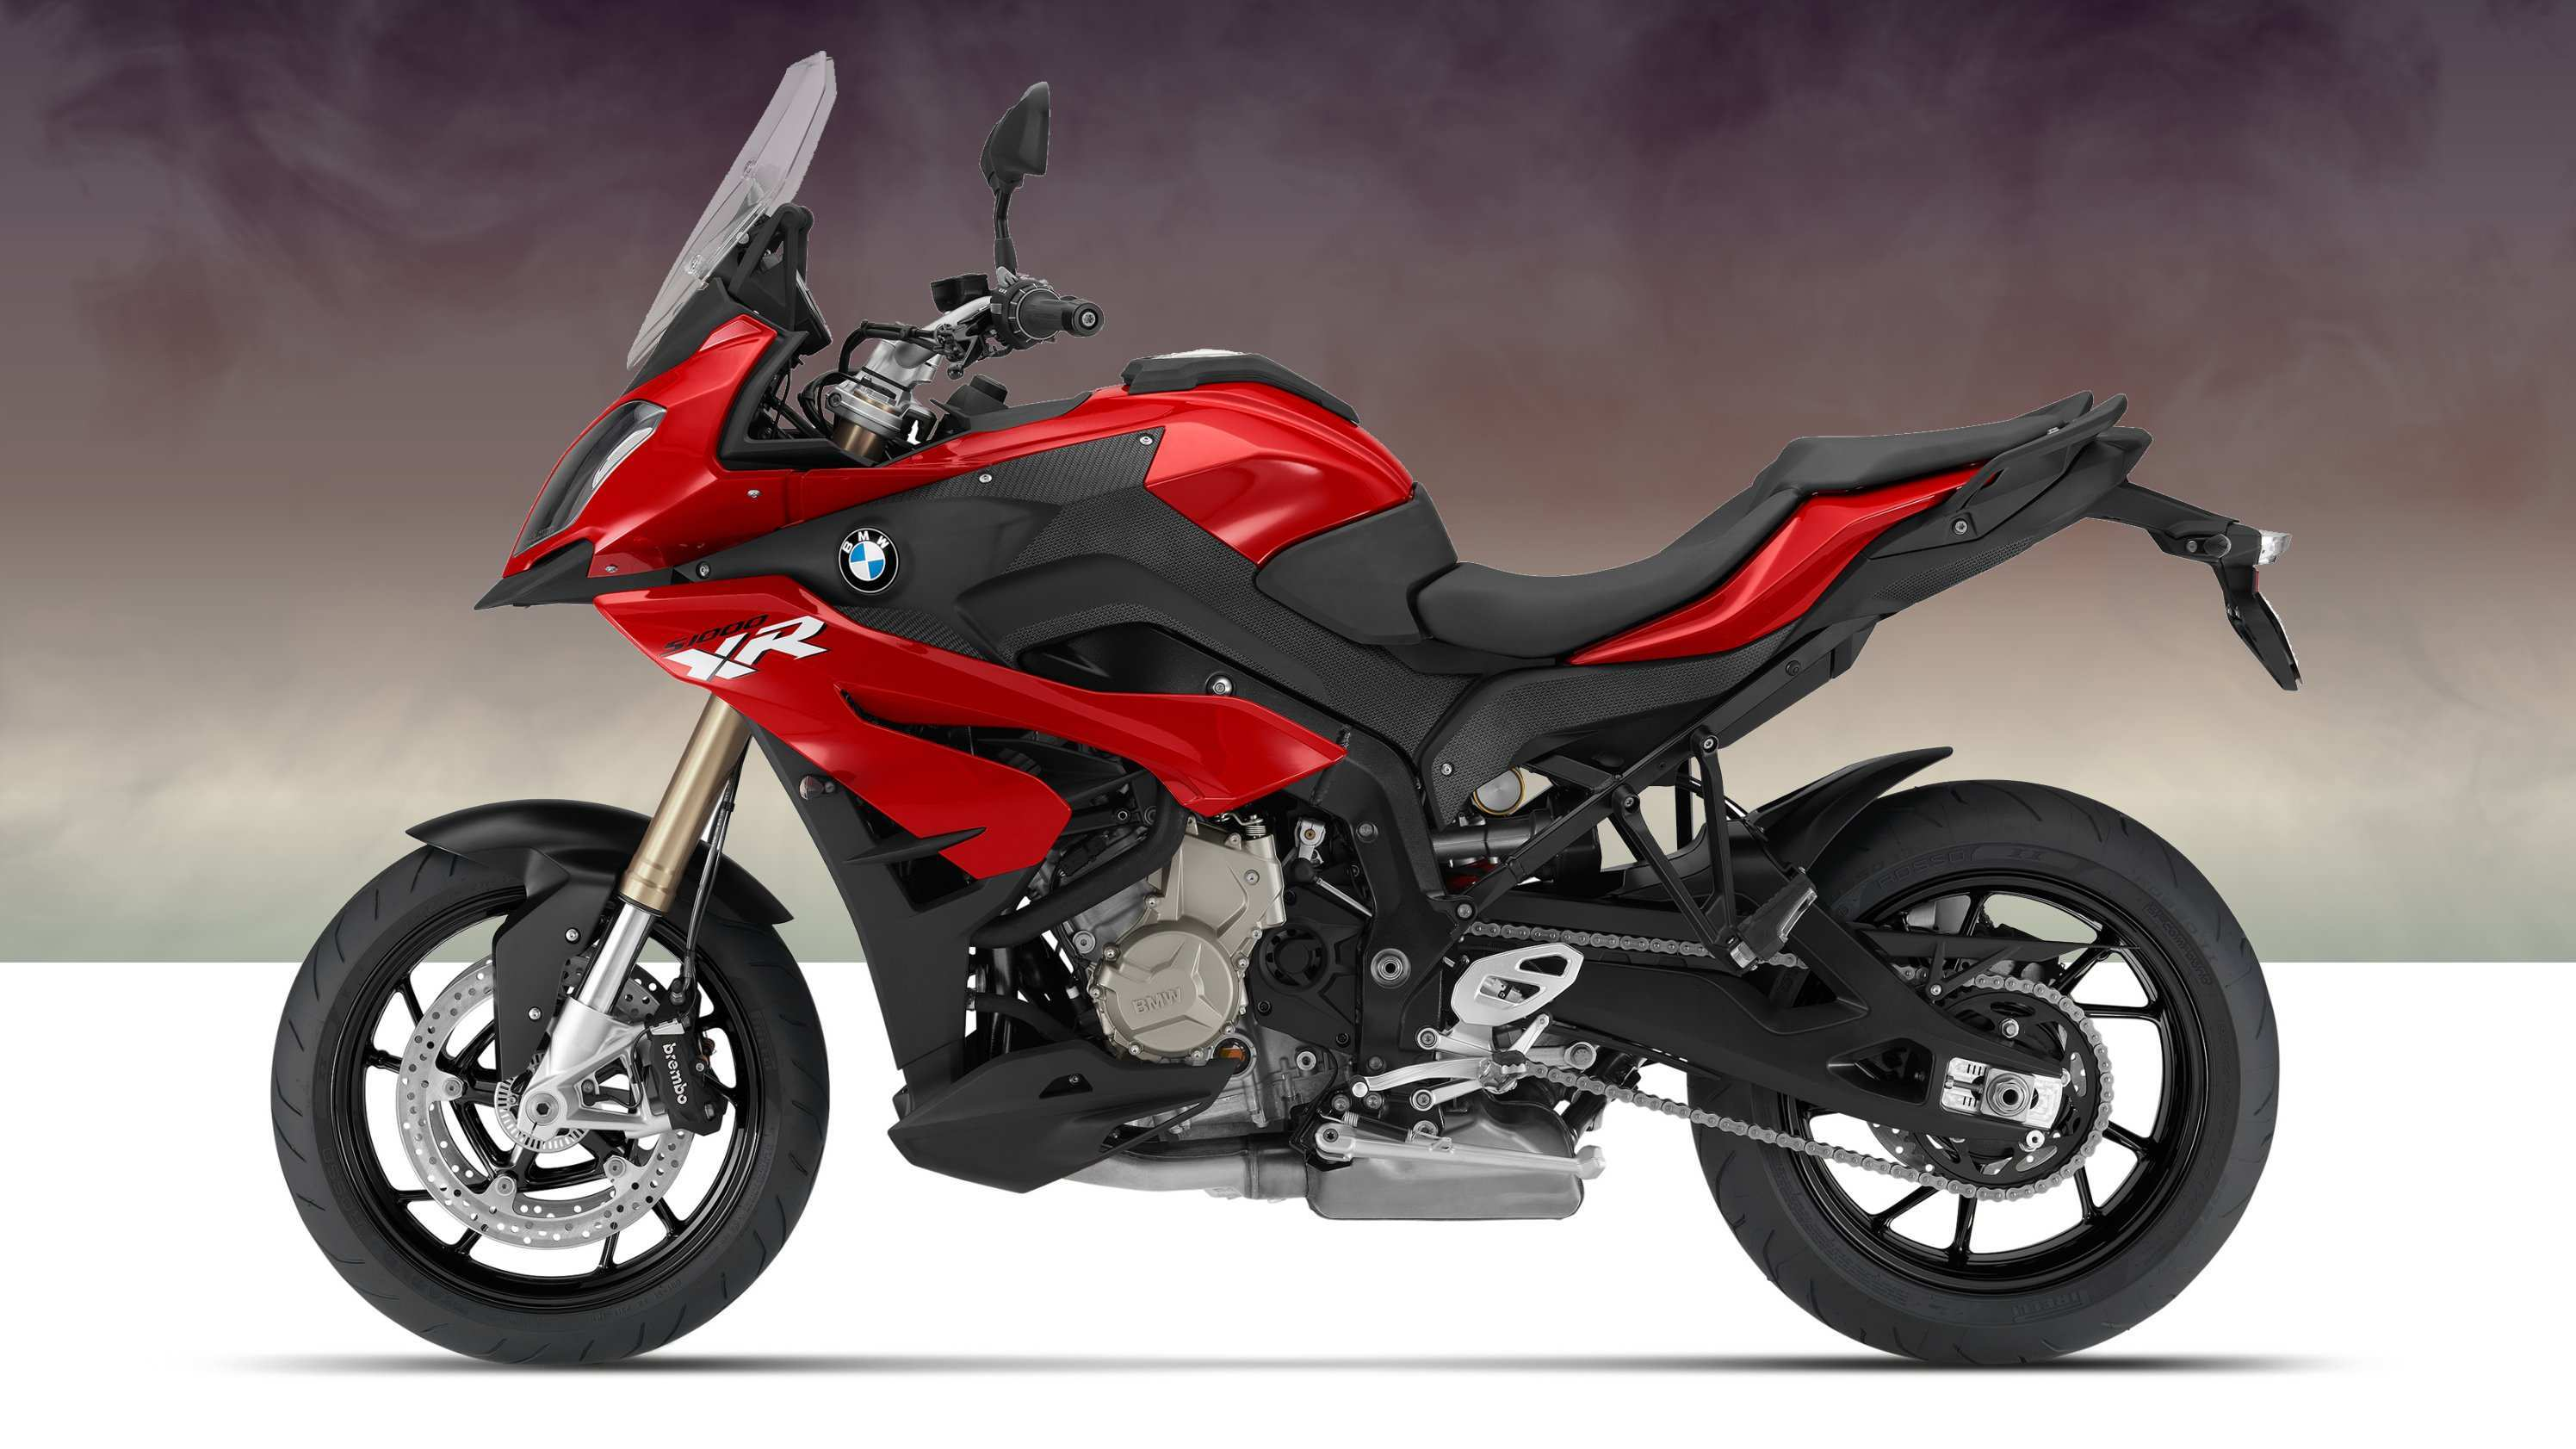 33 All New Best Bmw S1000Xr 2019 Release Date Price And Review New Concept with Best Bmw S1000Xr 2019 Release Date Price And Review